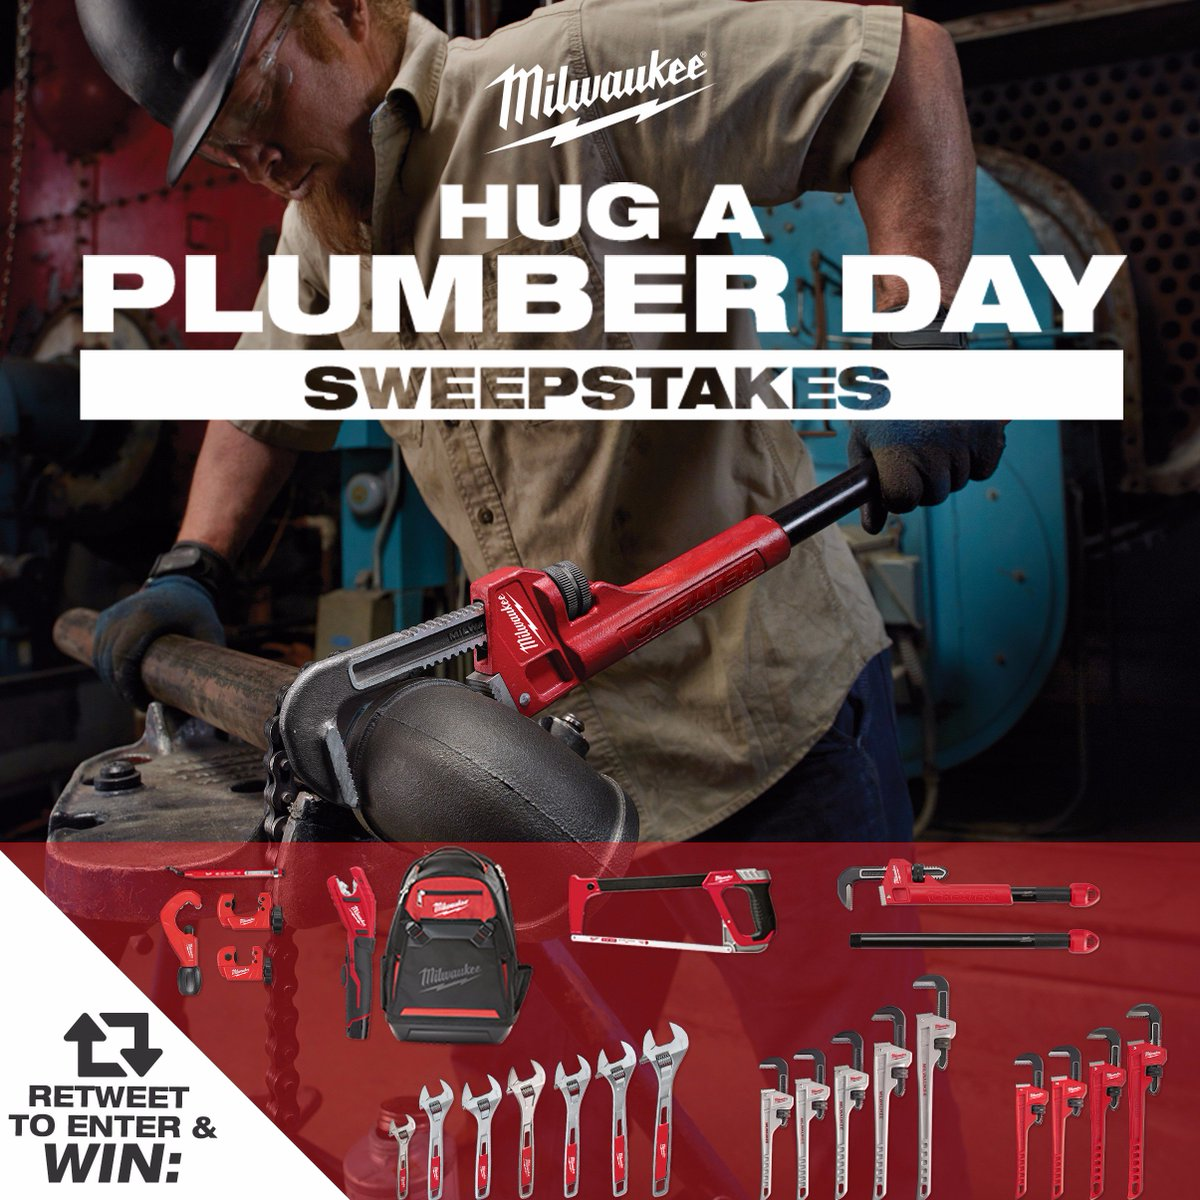 Win Milwaukee's full Plumbing Hand Tool solution this week for #HugaPlumberDay! RT to enter. https://t.co/OqW2PDCUa6 https://t.co/bbi1PiI4St